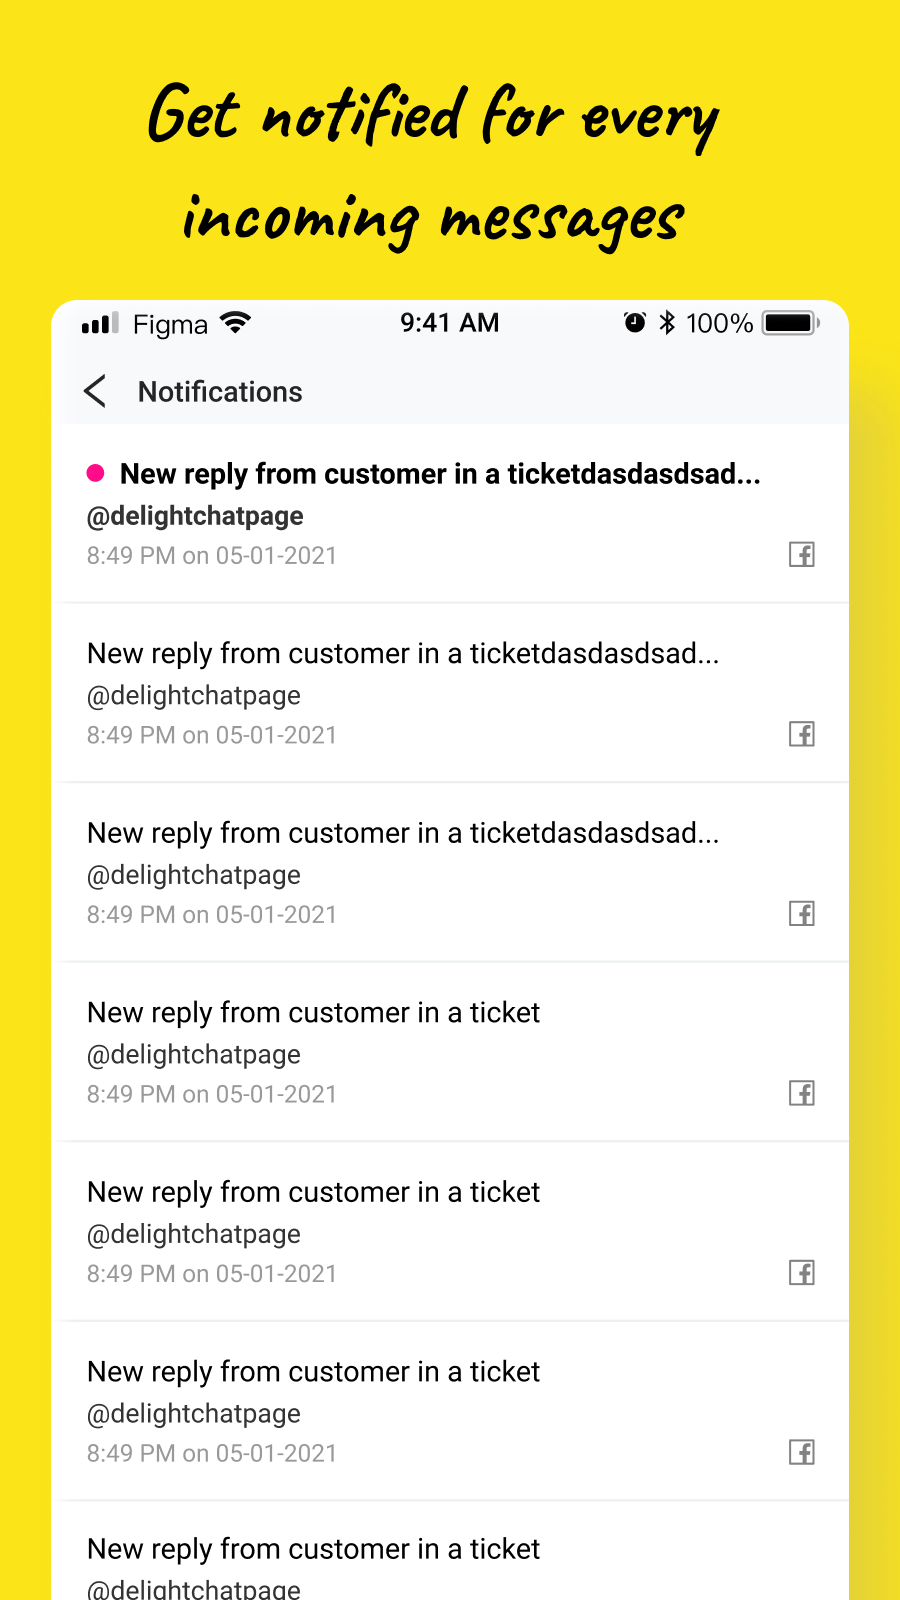 get notified with every new message